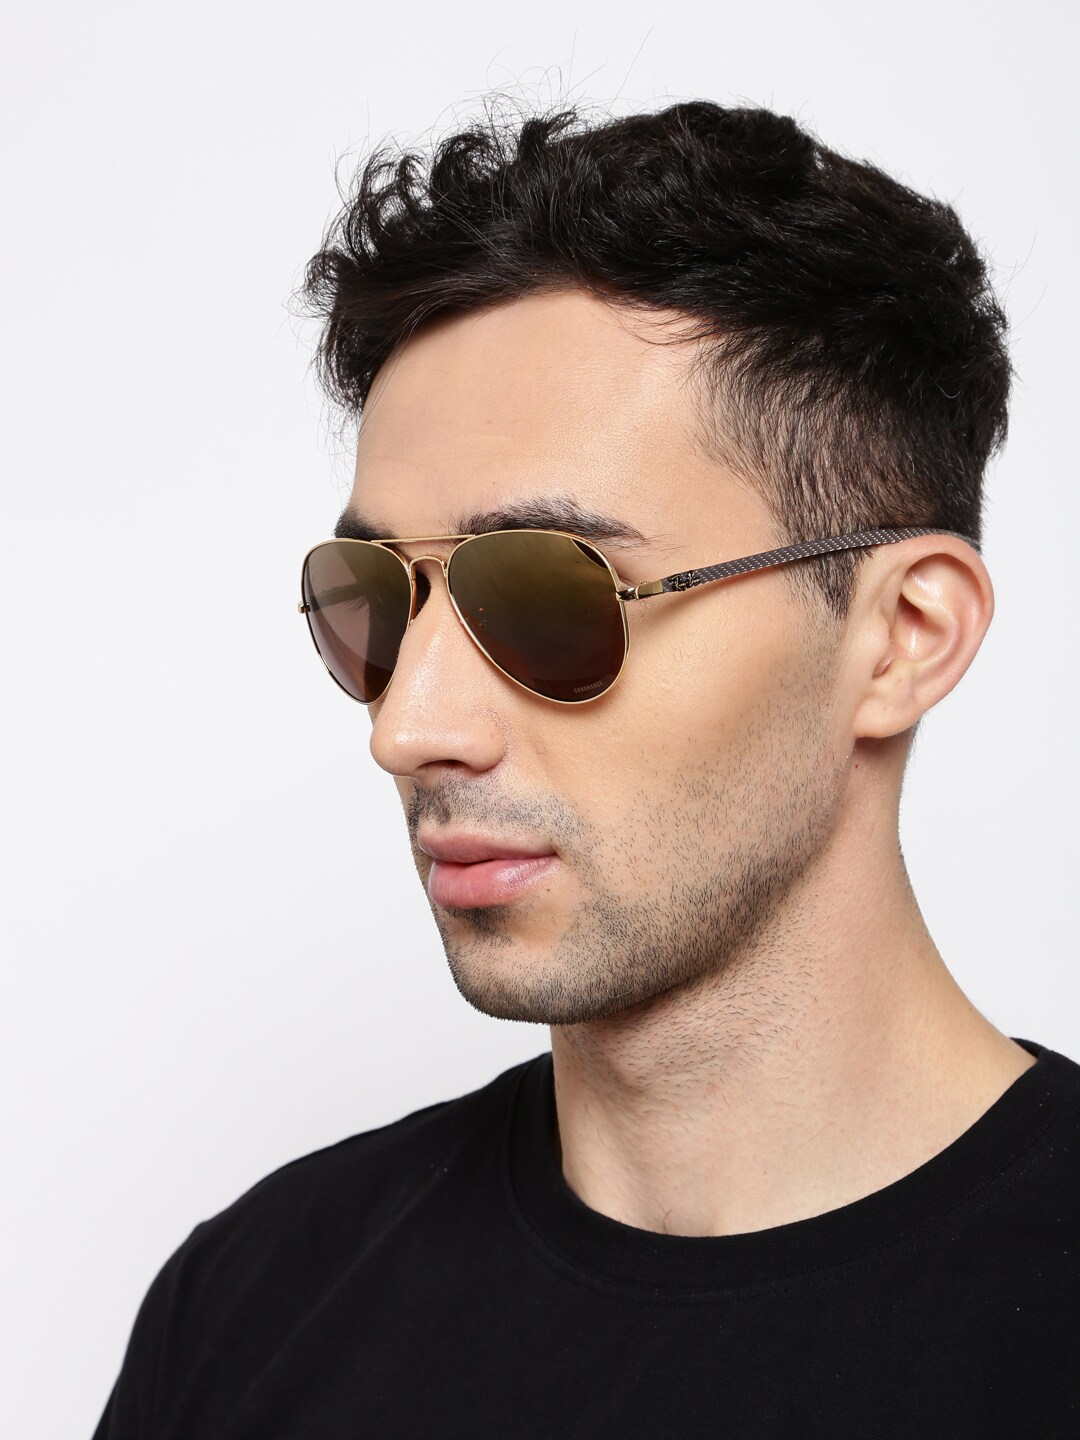 The Best Sunglasses for Men of 2018: Top 10 Coolest Trends 69